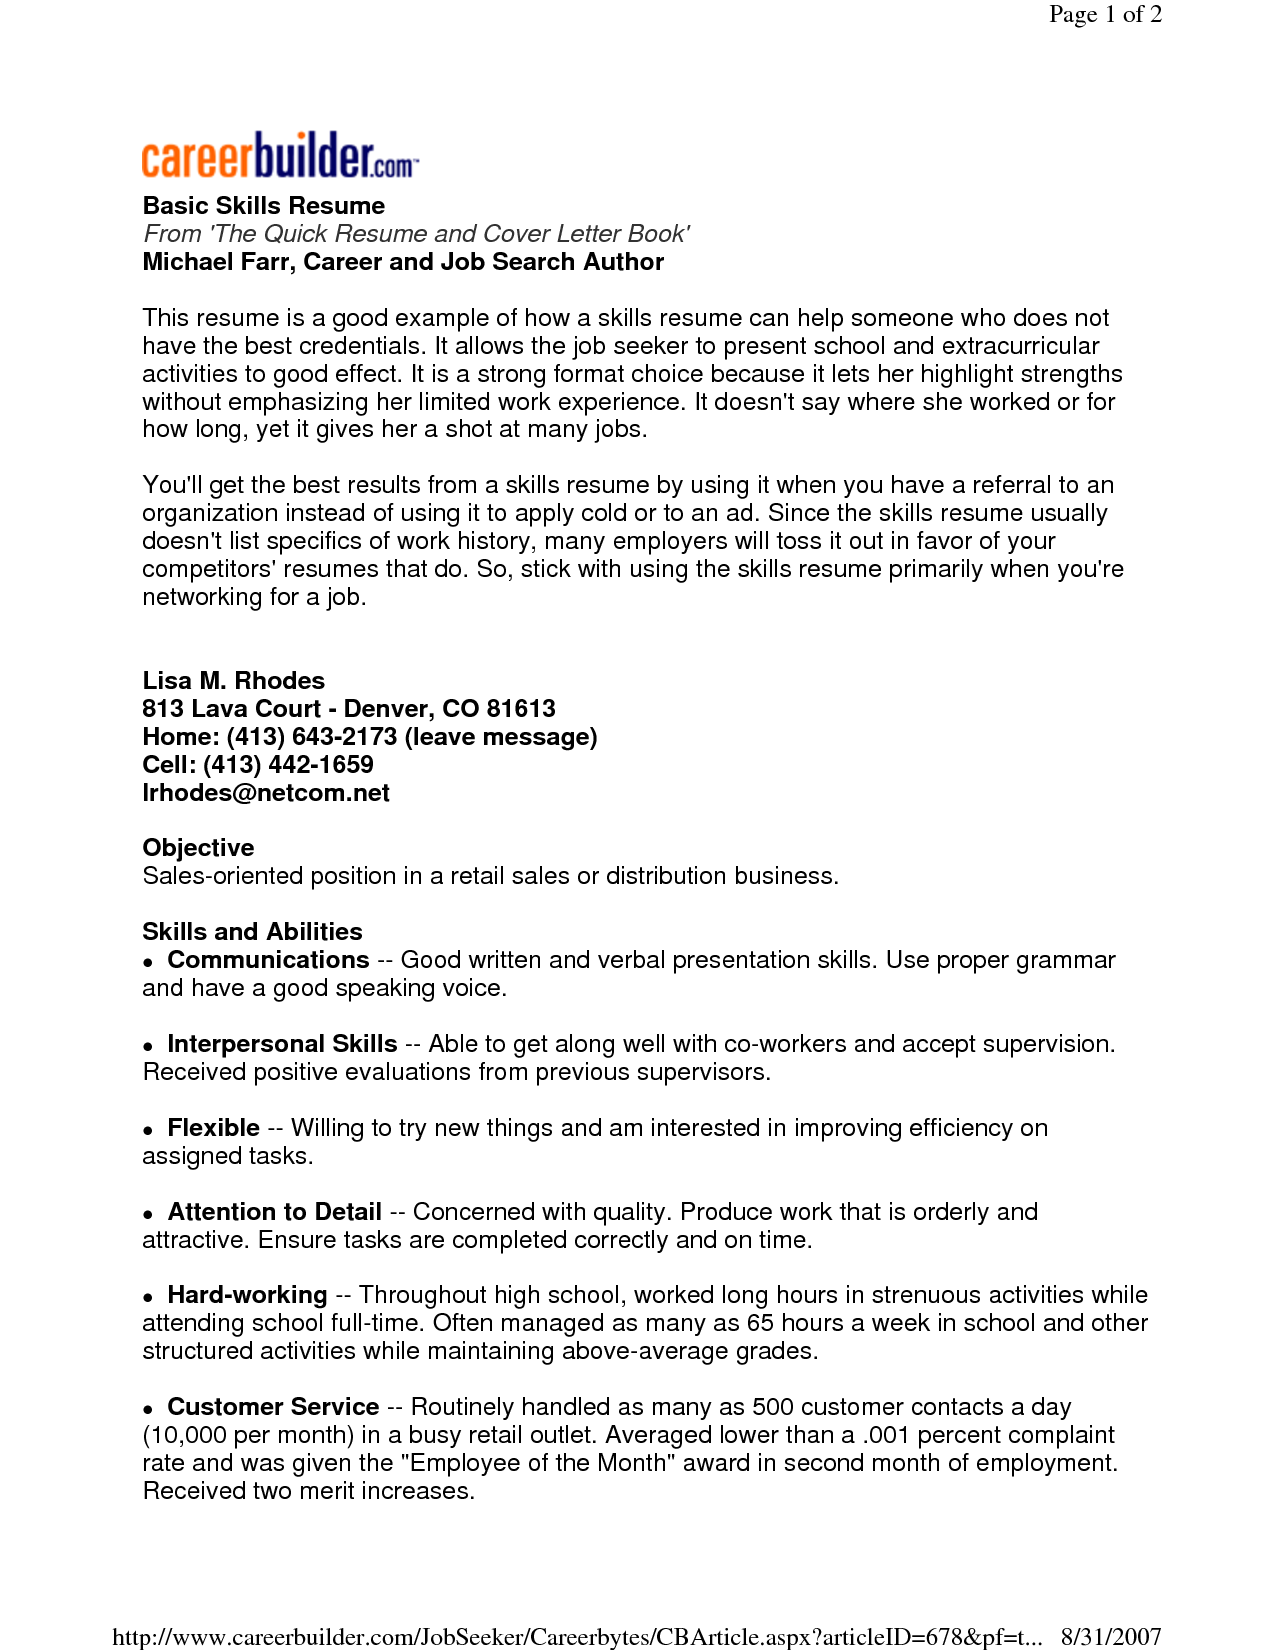 computer skill basic computer skills getting started your first – Skills Section Resume Examples